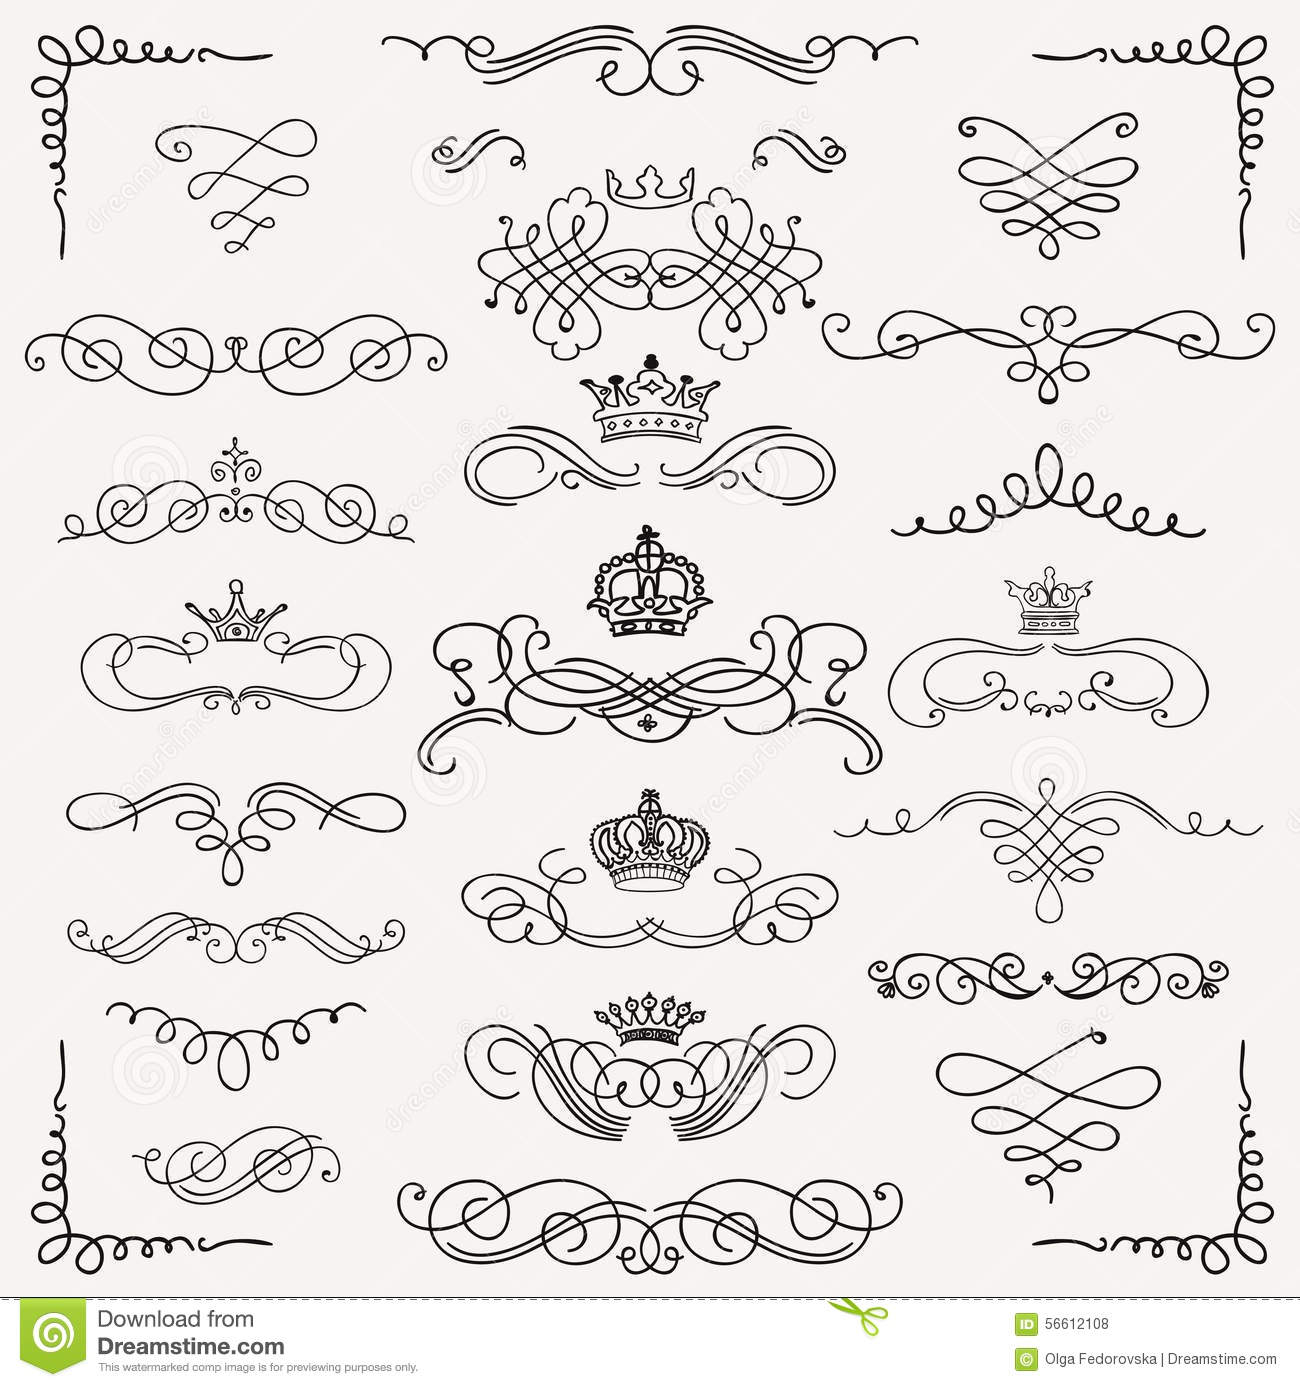 Rustic Scroll Design: Vector Black Vintage Hand Drawn Swirls And Crowns Stock